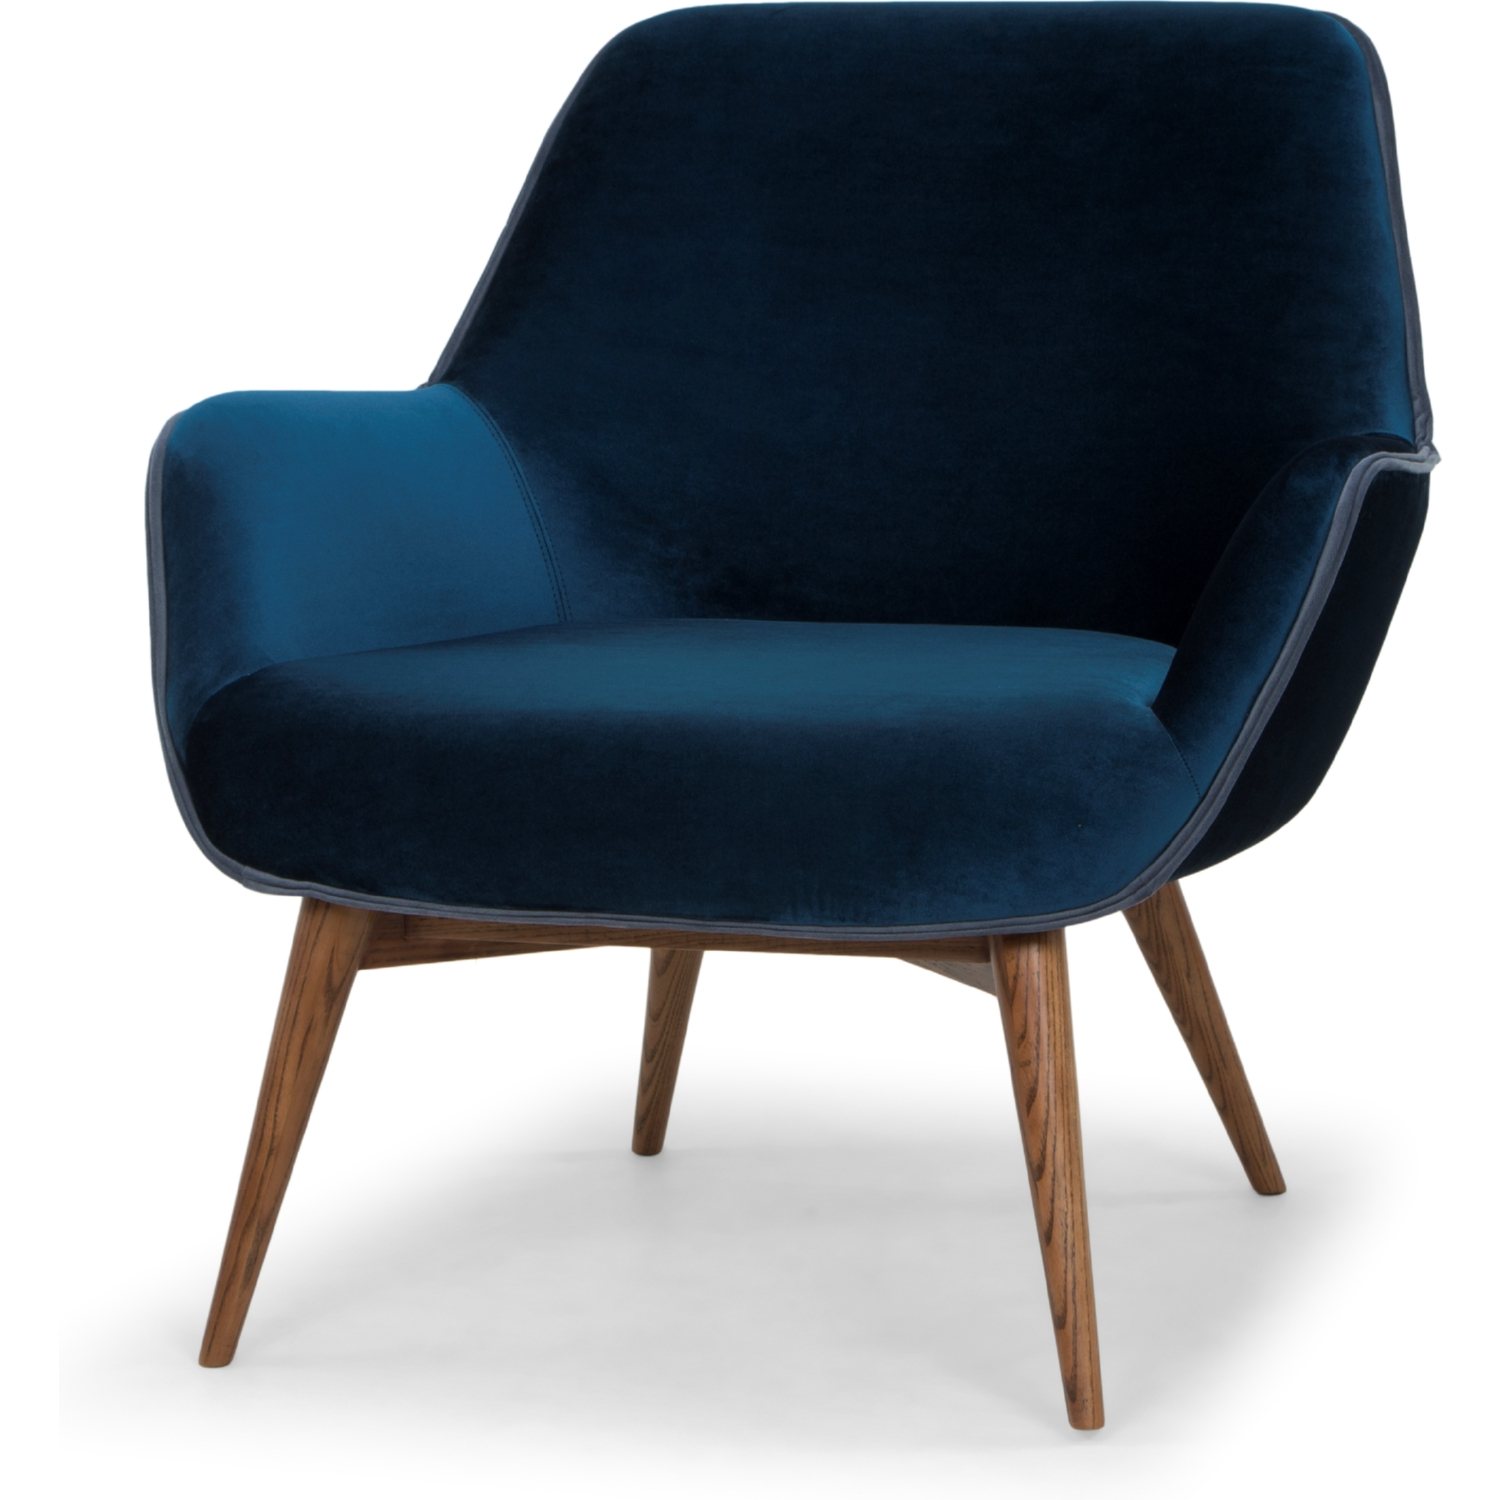 Marvelous Nuevo Modern Furniture HGSC175 Gretchen Accent Chair In Midnight Blue  Fabric W/ Dust Blue Piping